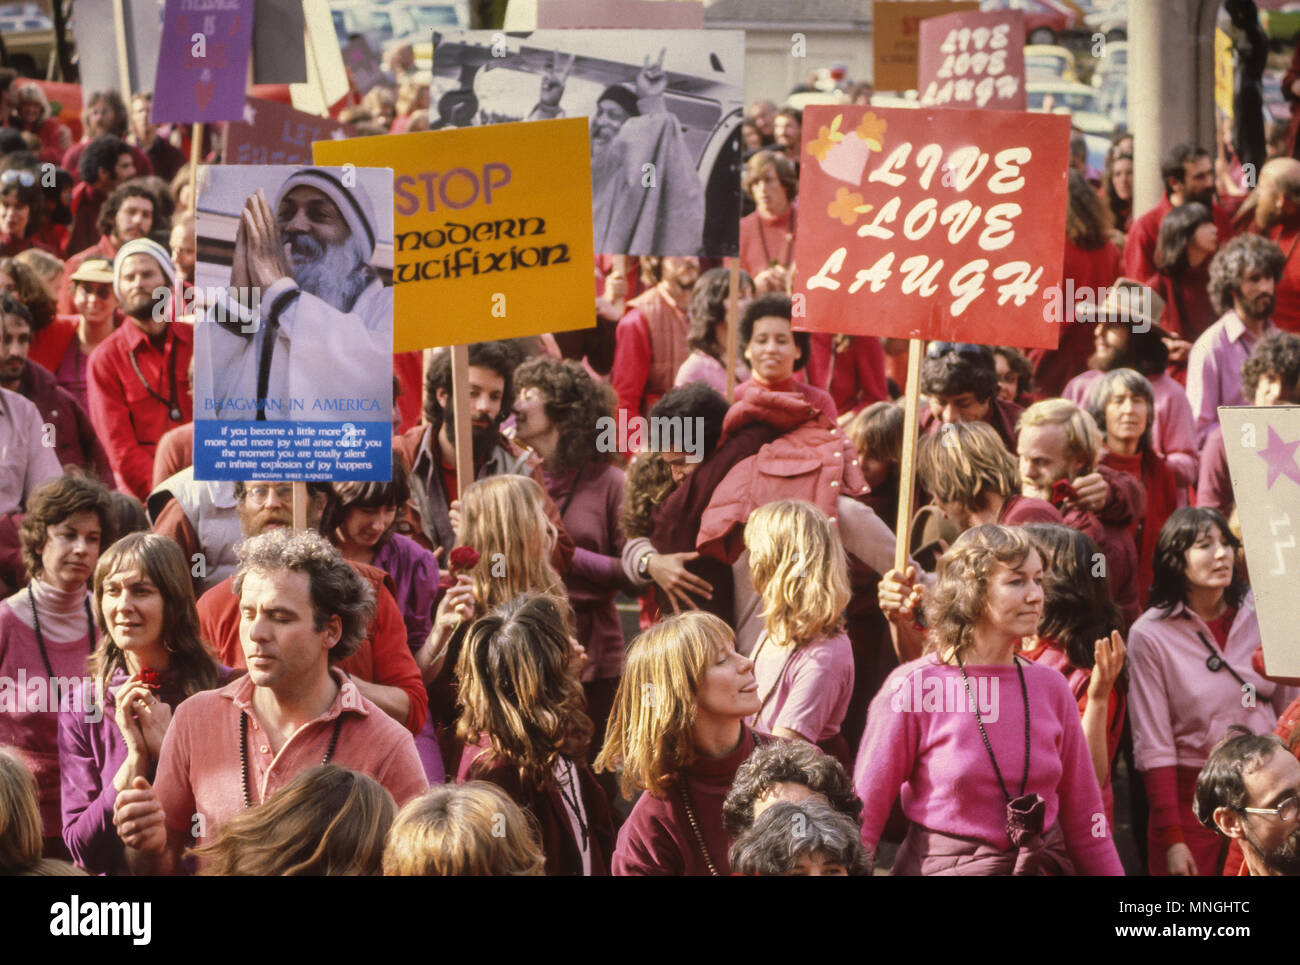 PORTLAND, OREGON, USA - Rajneeshees, followers of religious cult leader Bhagwan Shree Rajneesh, protest INS policy. 1982 - Stock Image